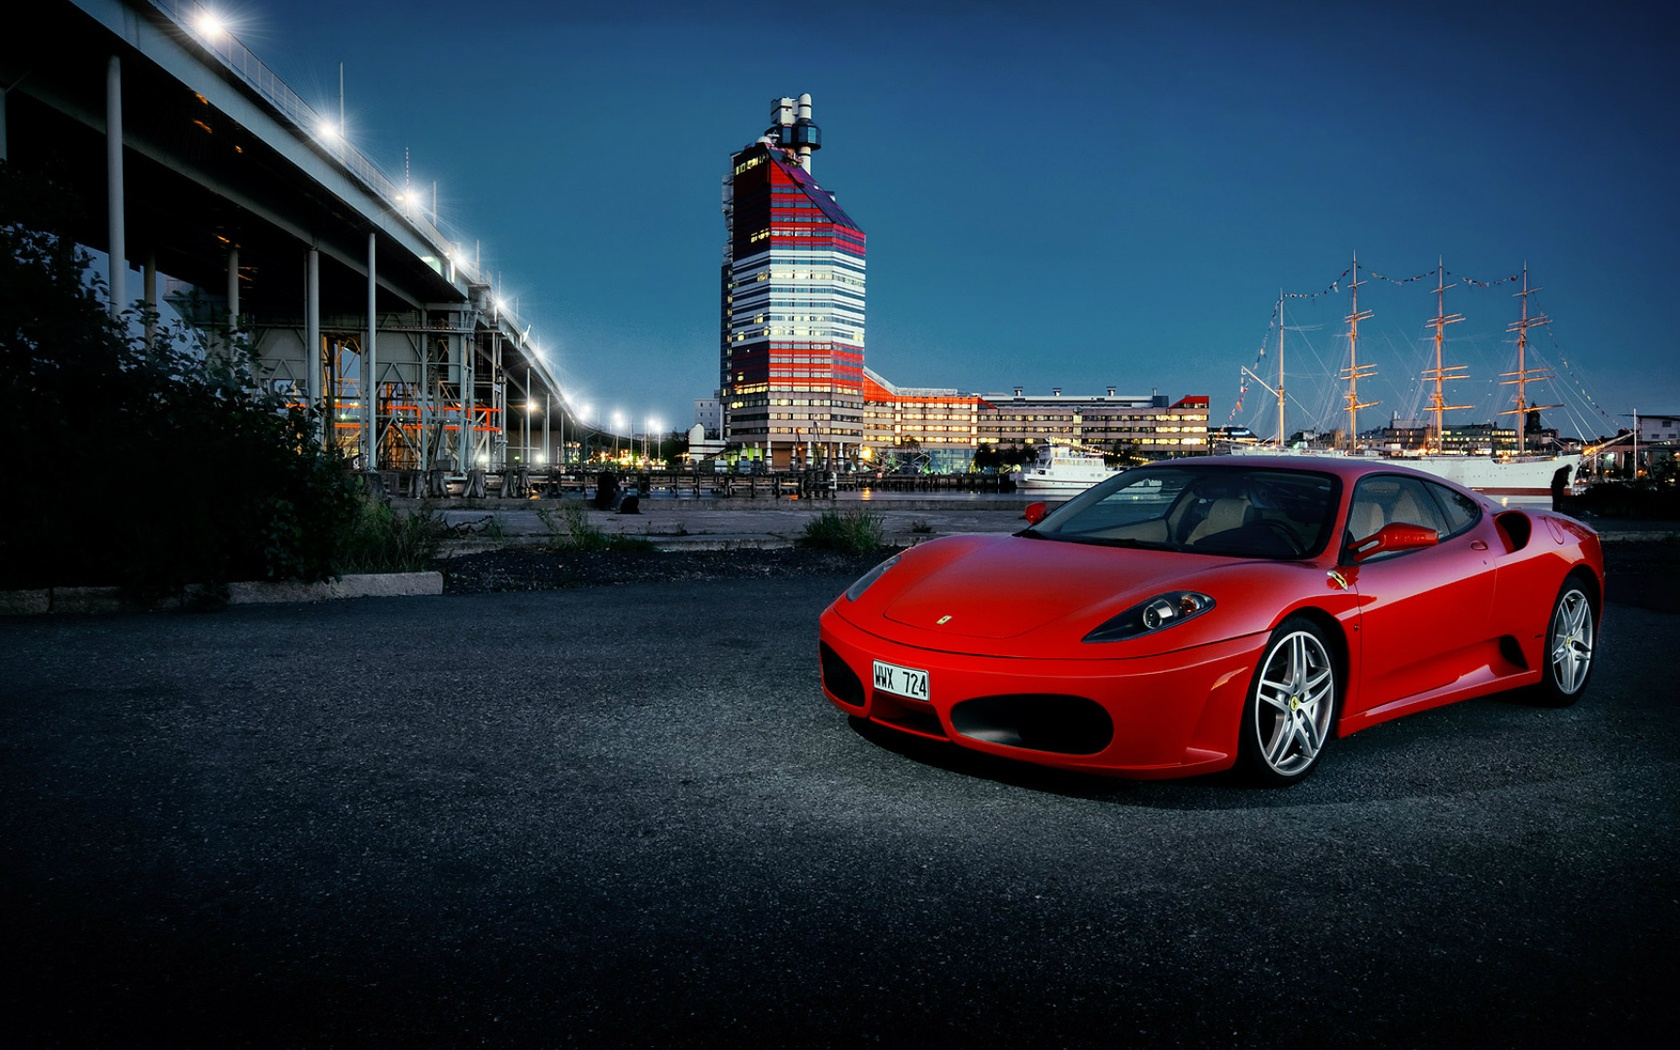 Download Wallpaper Night Ferrari - red_ferrari_f430_from_sweden-1680x1050  Picture-869750.jpg